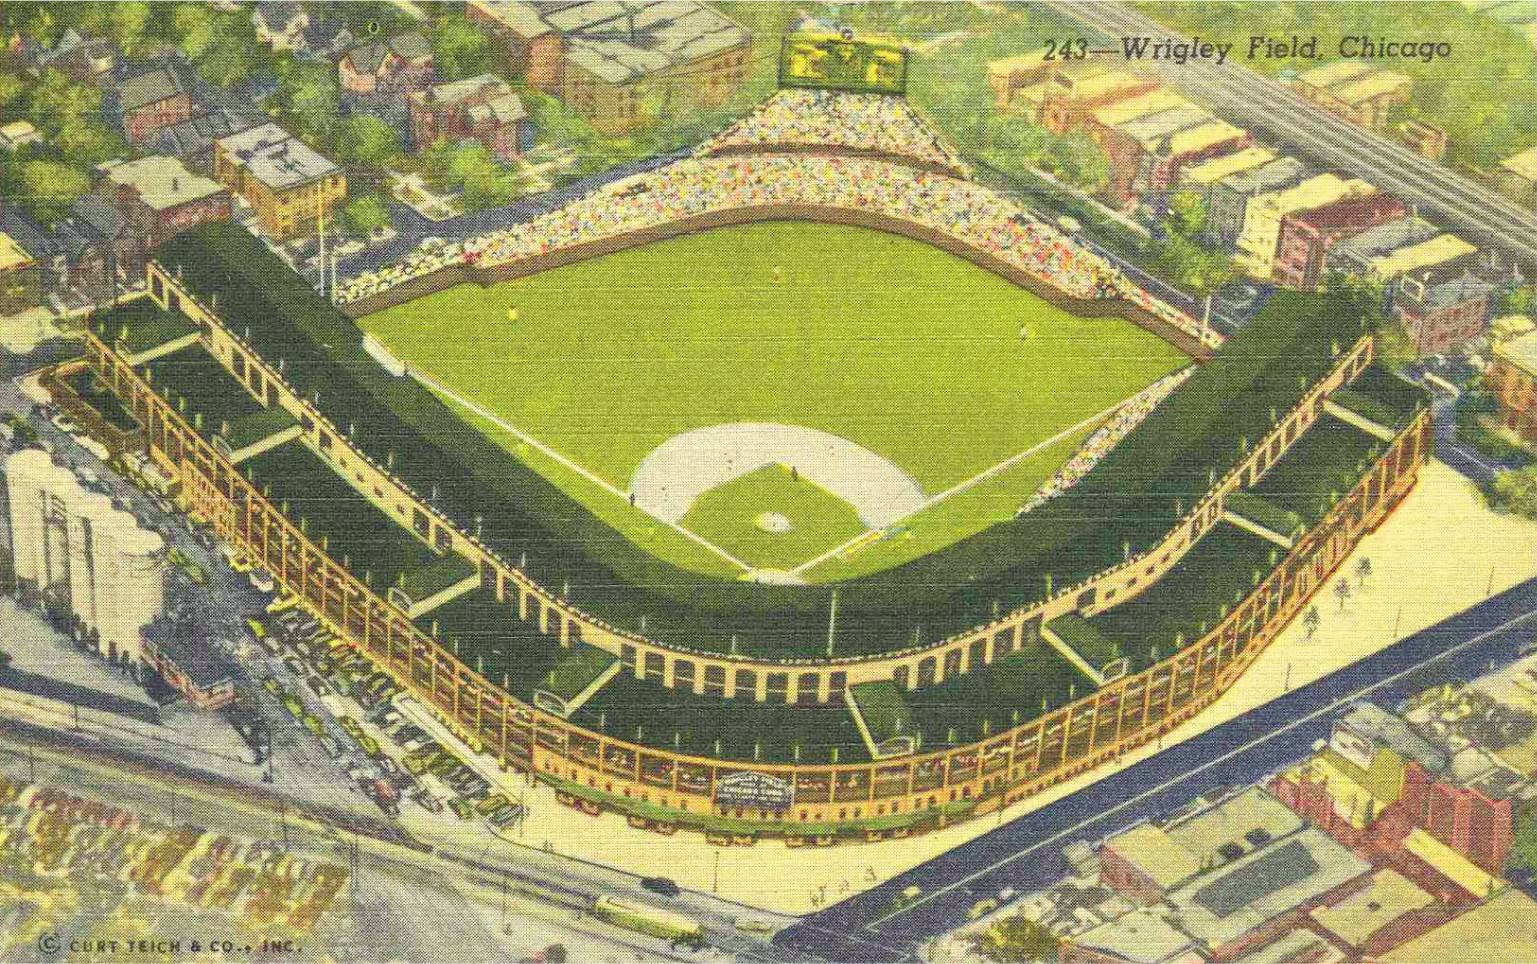 CHICAGO ARGUS Turning Wrigley Field Into A Version Of The Old - Chicago map showing wrigley field